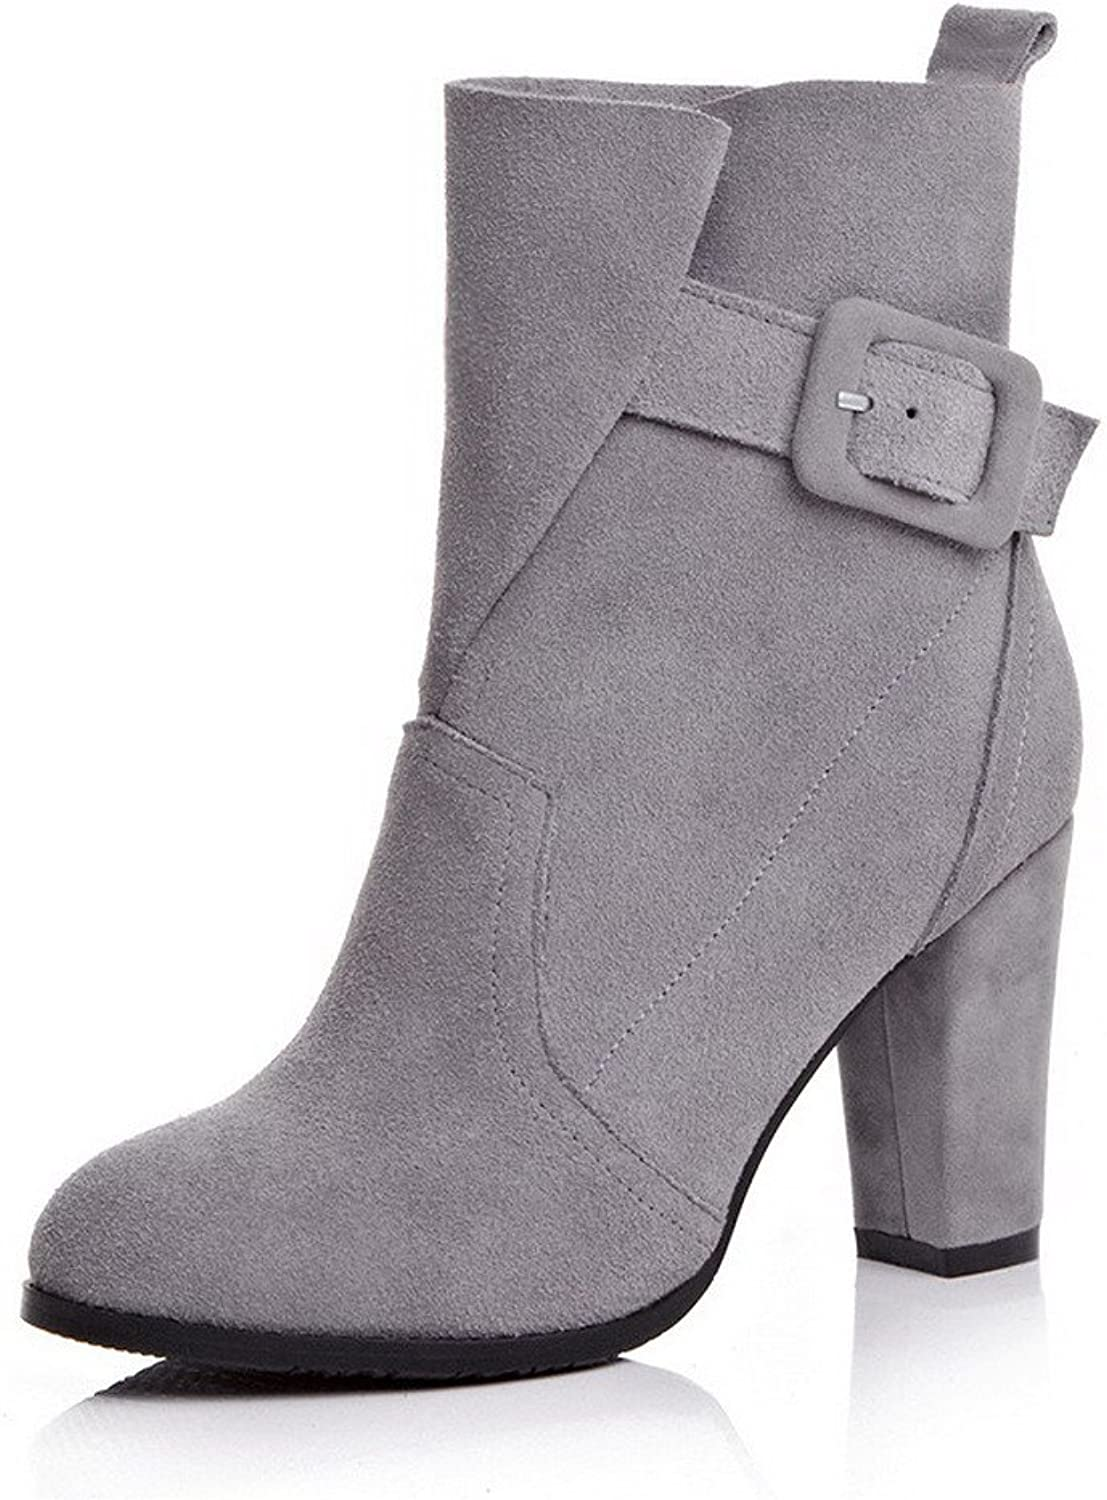 WeenFashion Women's Cow Imitated Suede High-Heels Round-Toe Boot with Slipping Sole and Chunky Heels